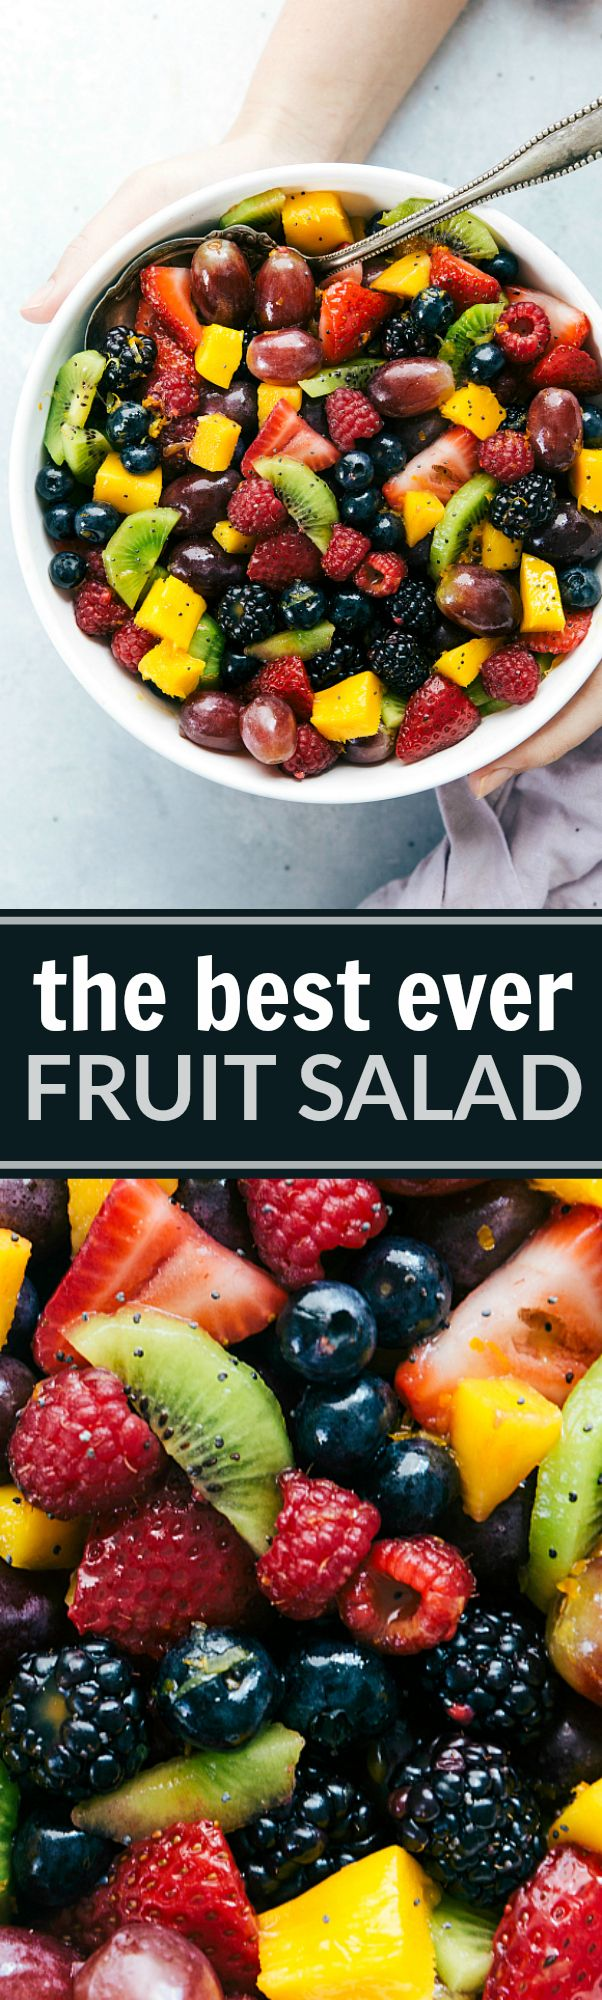 The ultimate BEST EVER FRUIT SALAD!